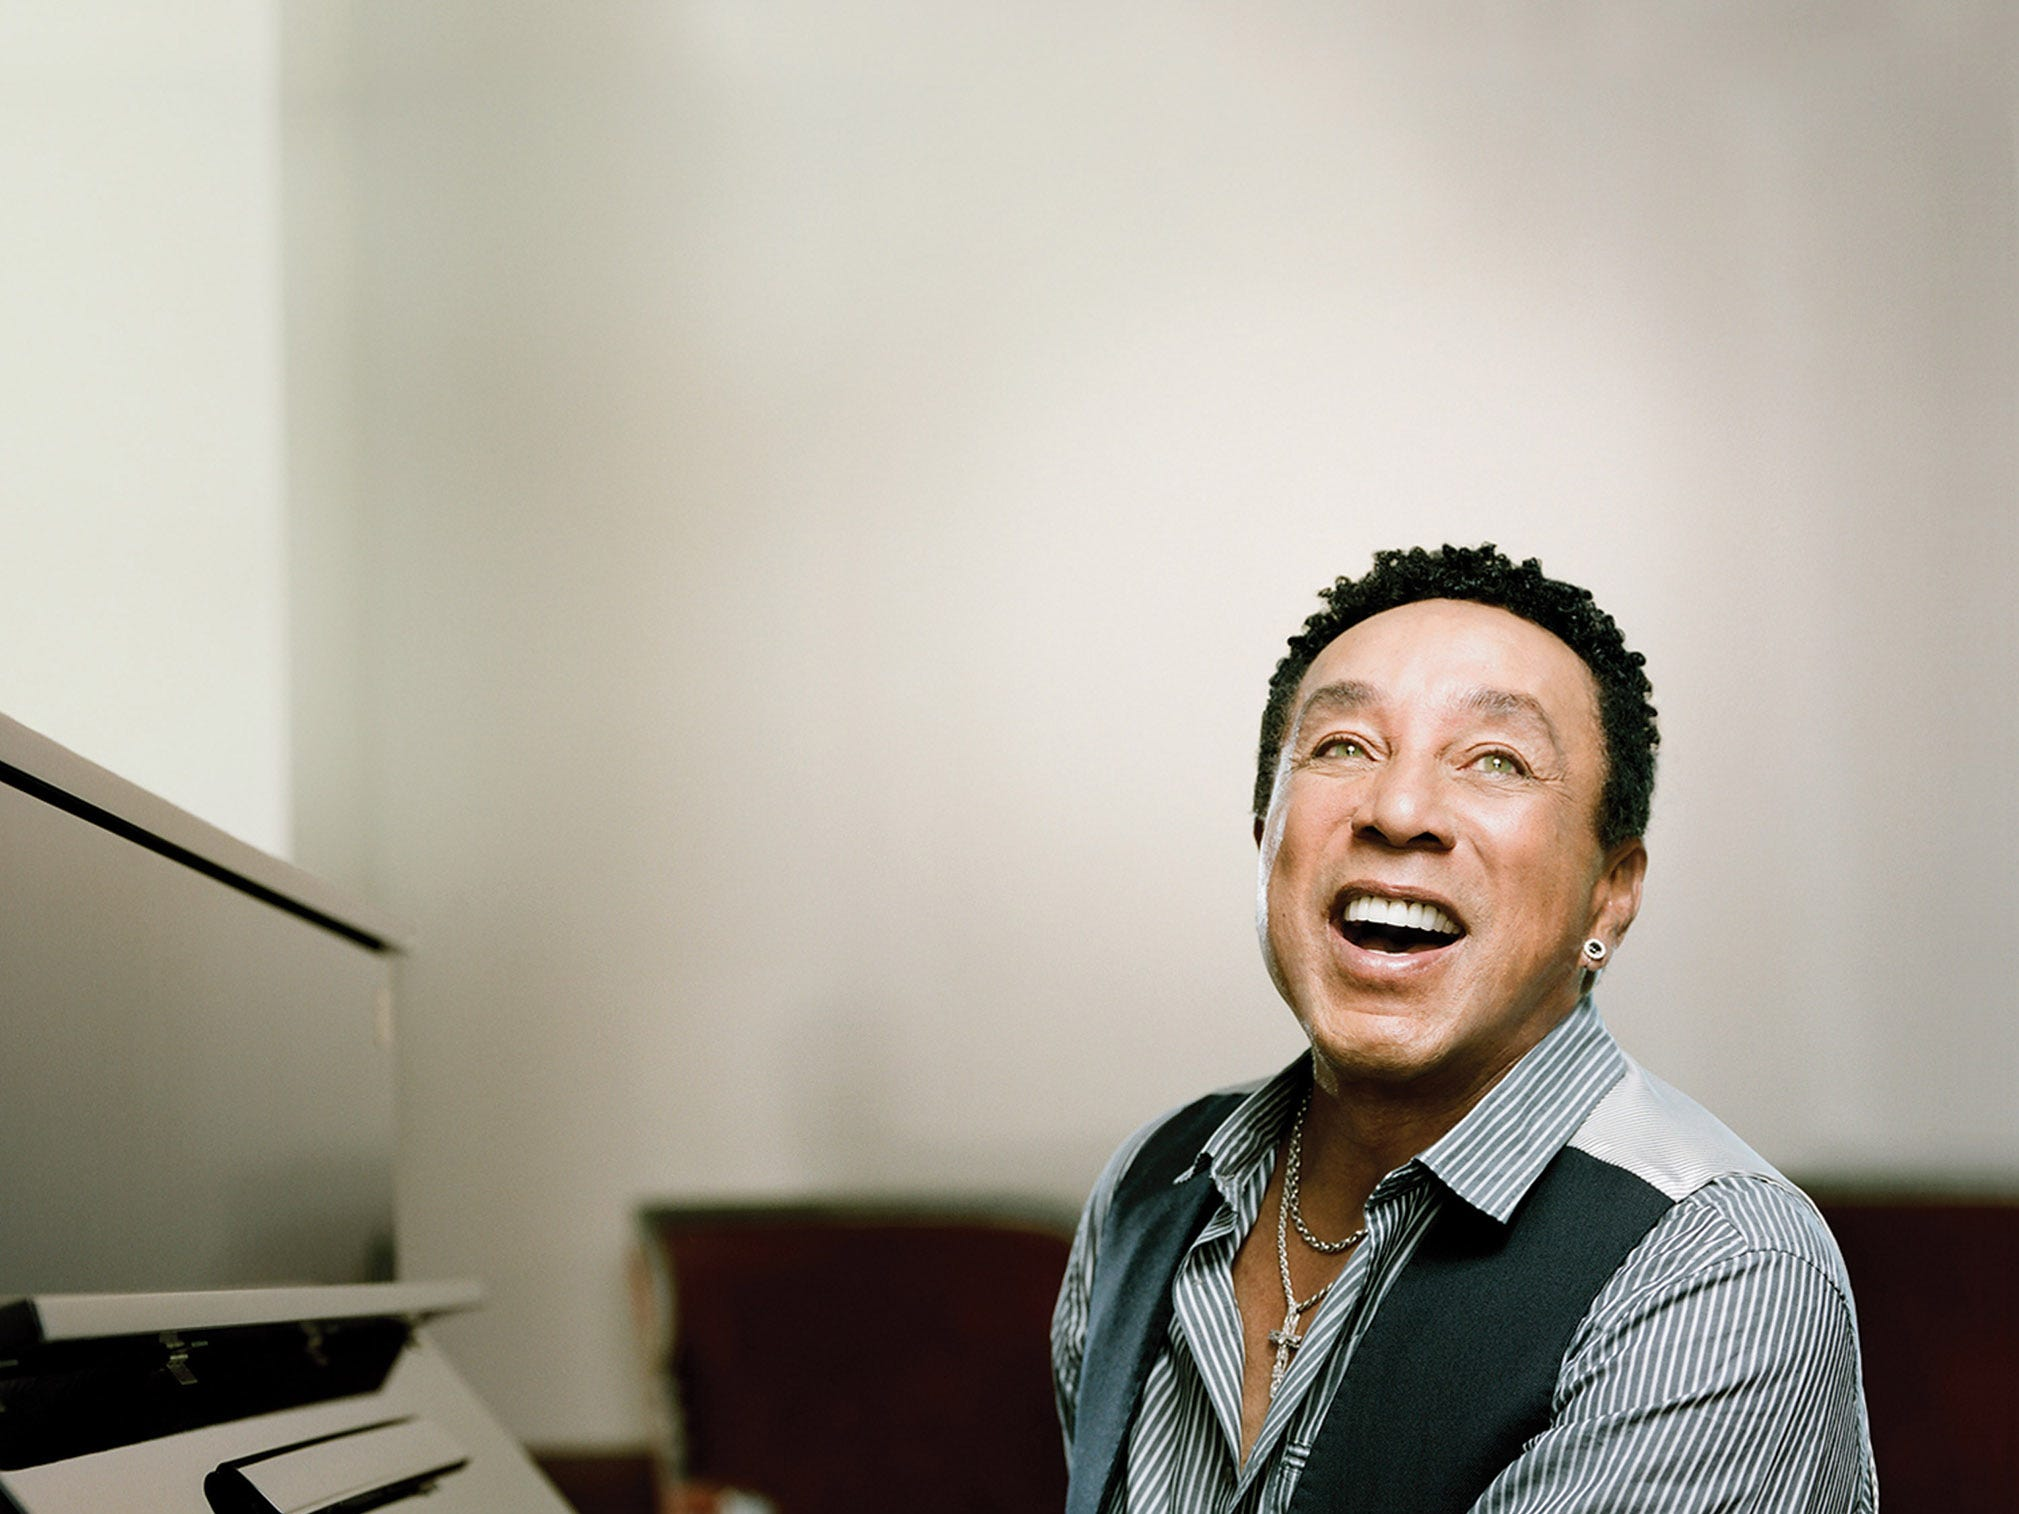 Smokey Robinson will launch at show at Wynn Las Vegas in February 2019.